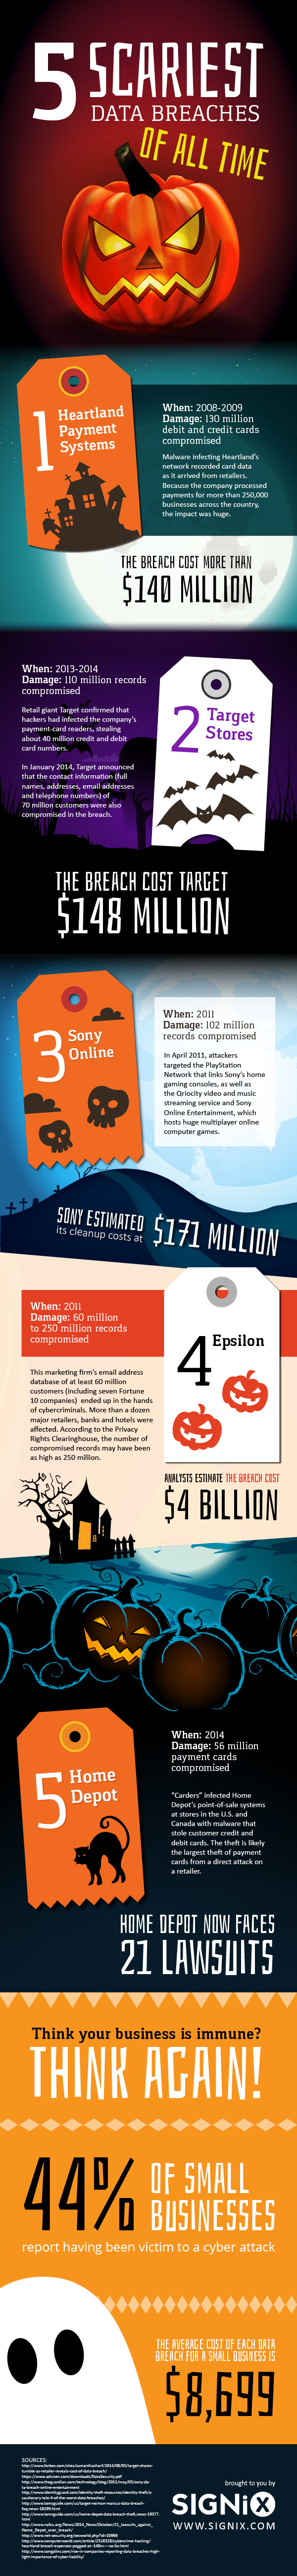 Scariest Data Breaches of All Time Infographic